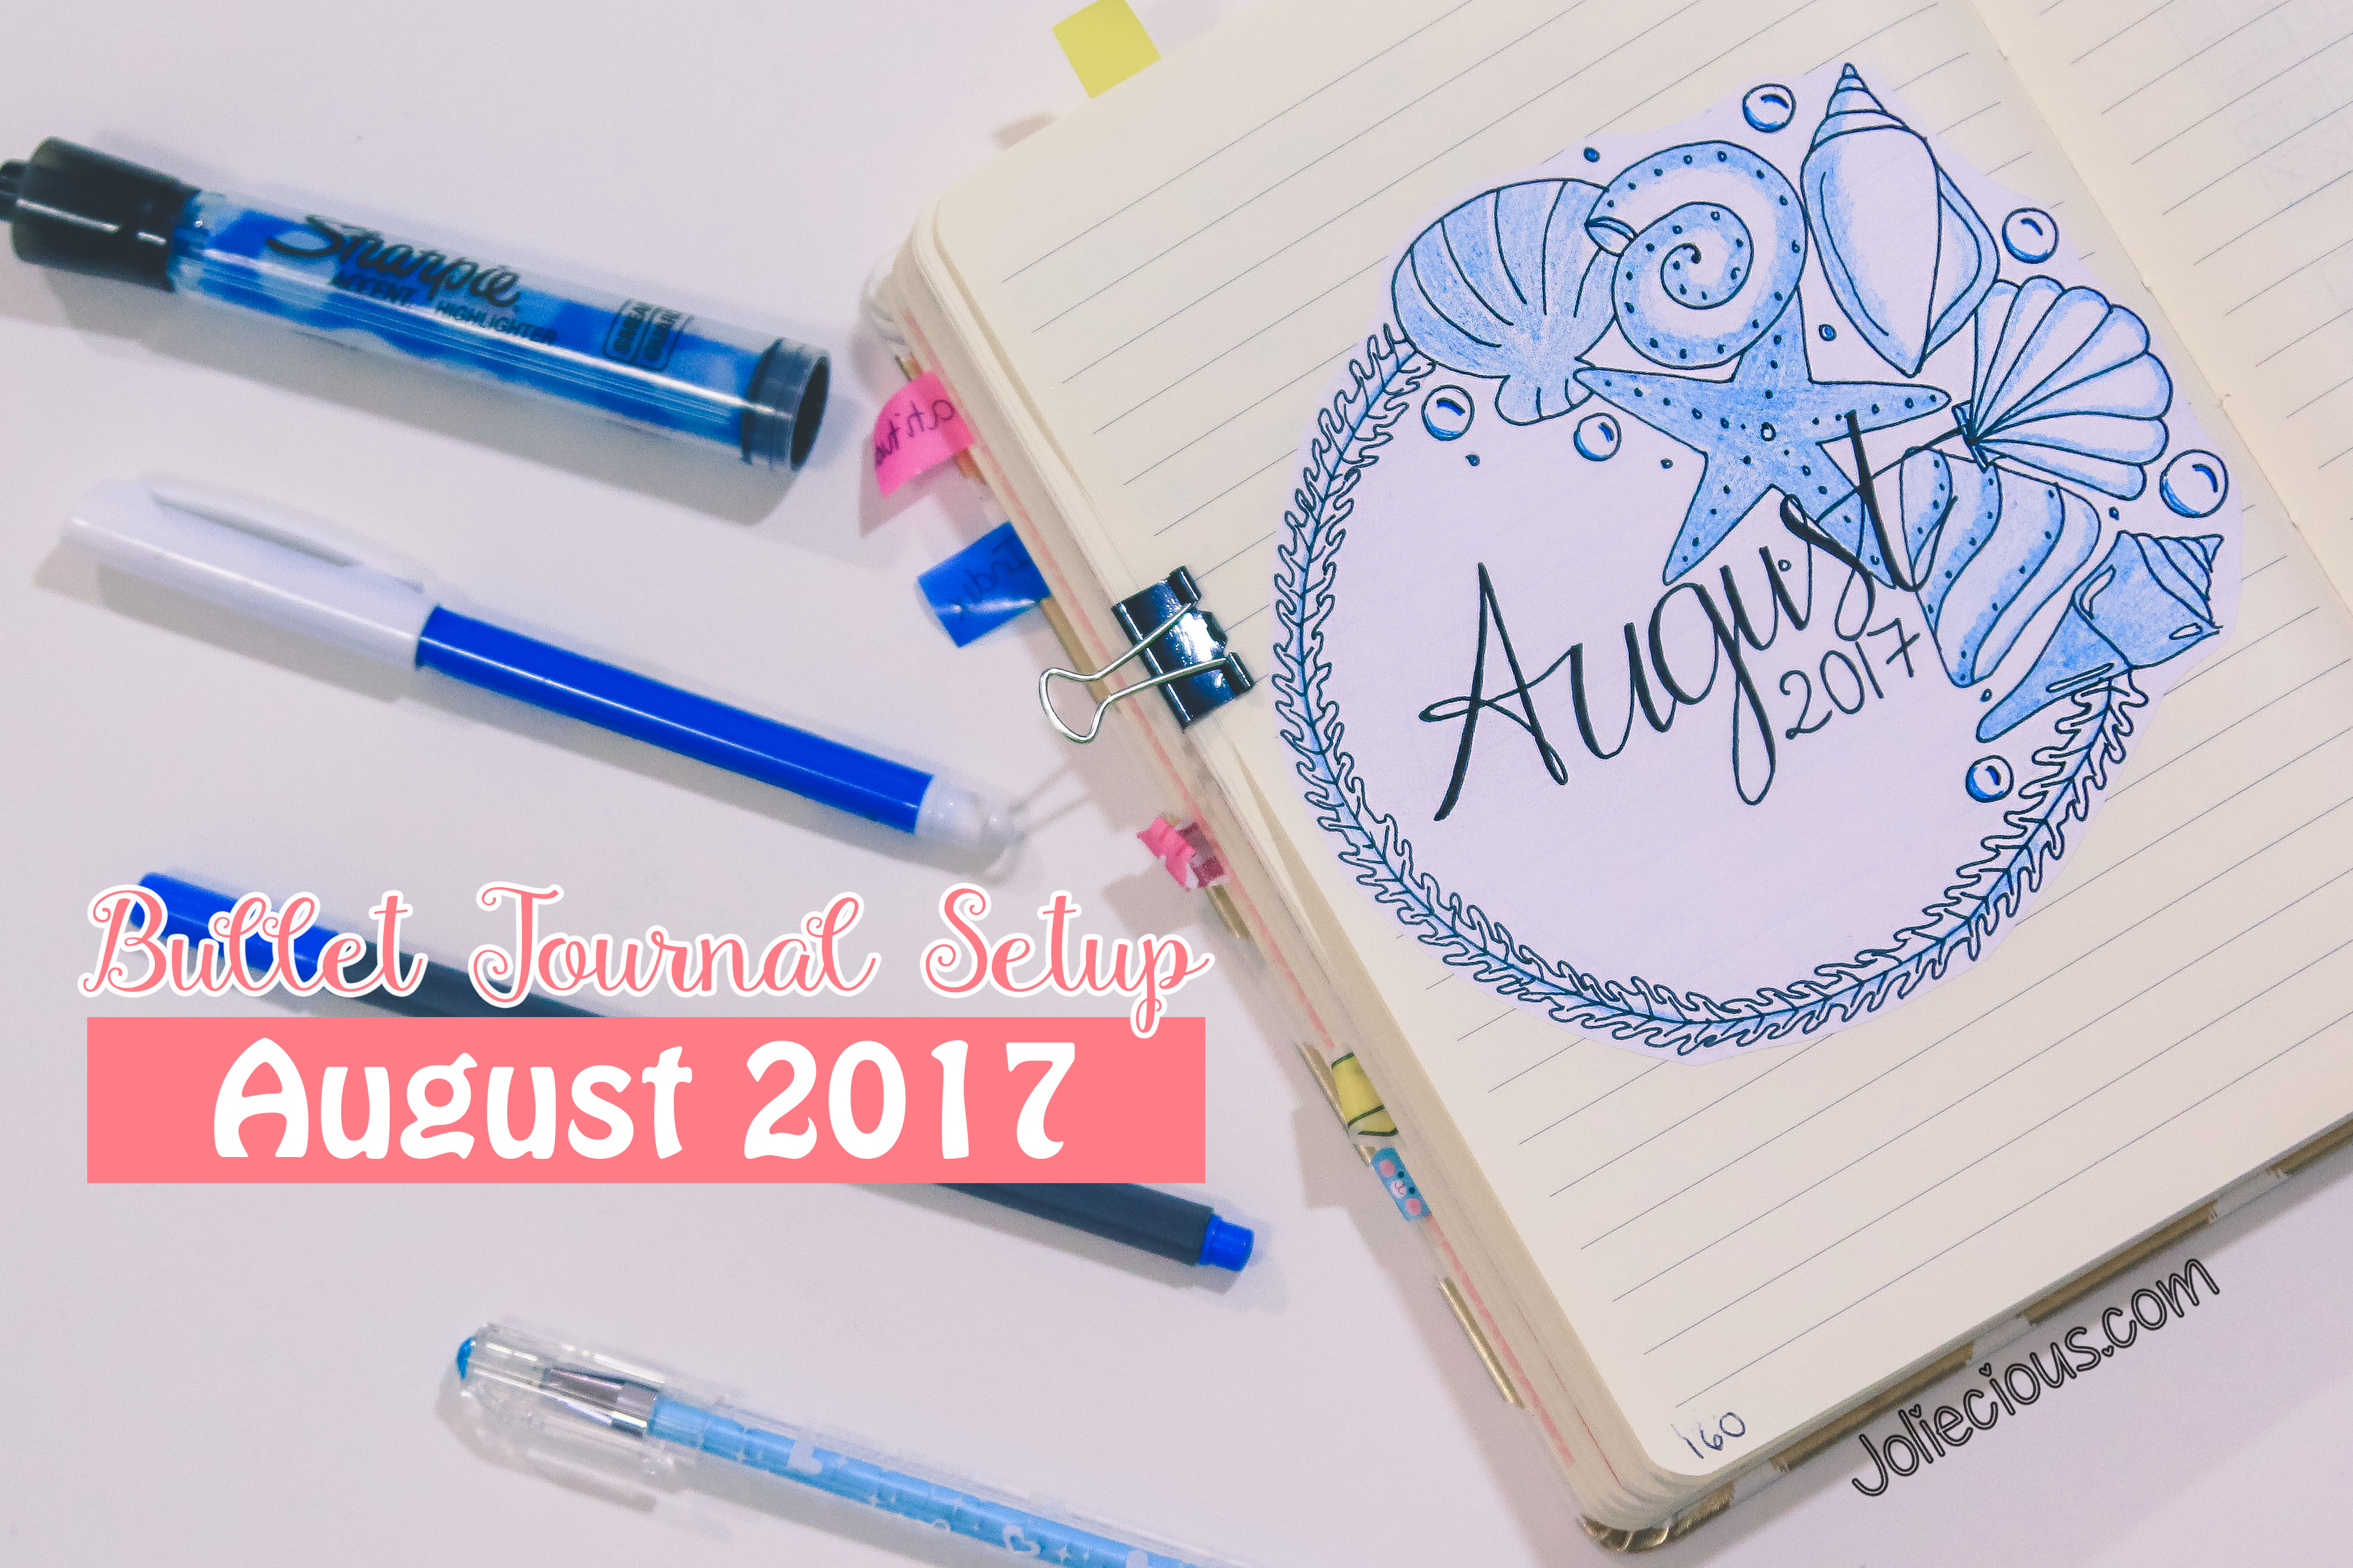 Bullet Journal Setup: August 2017